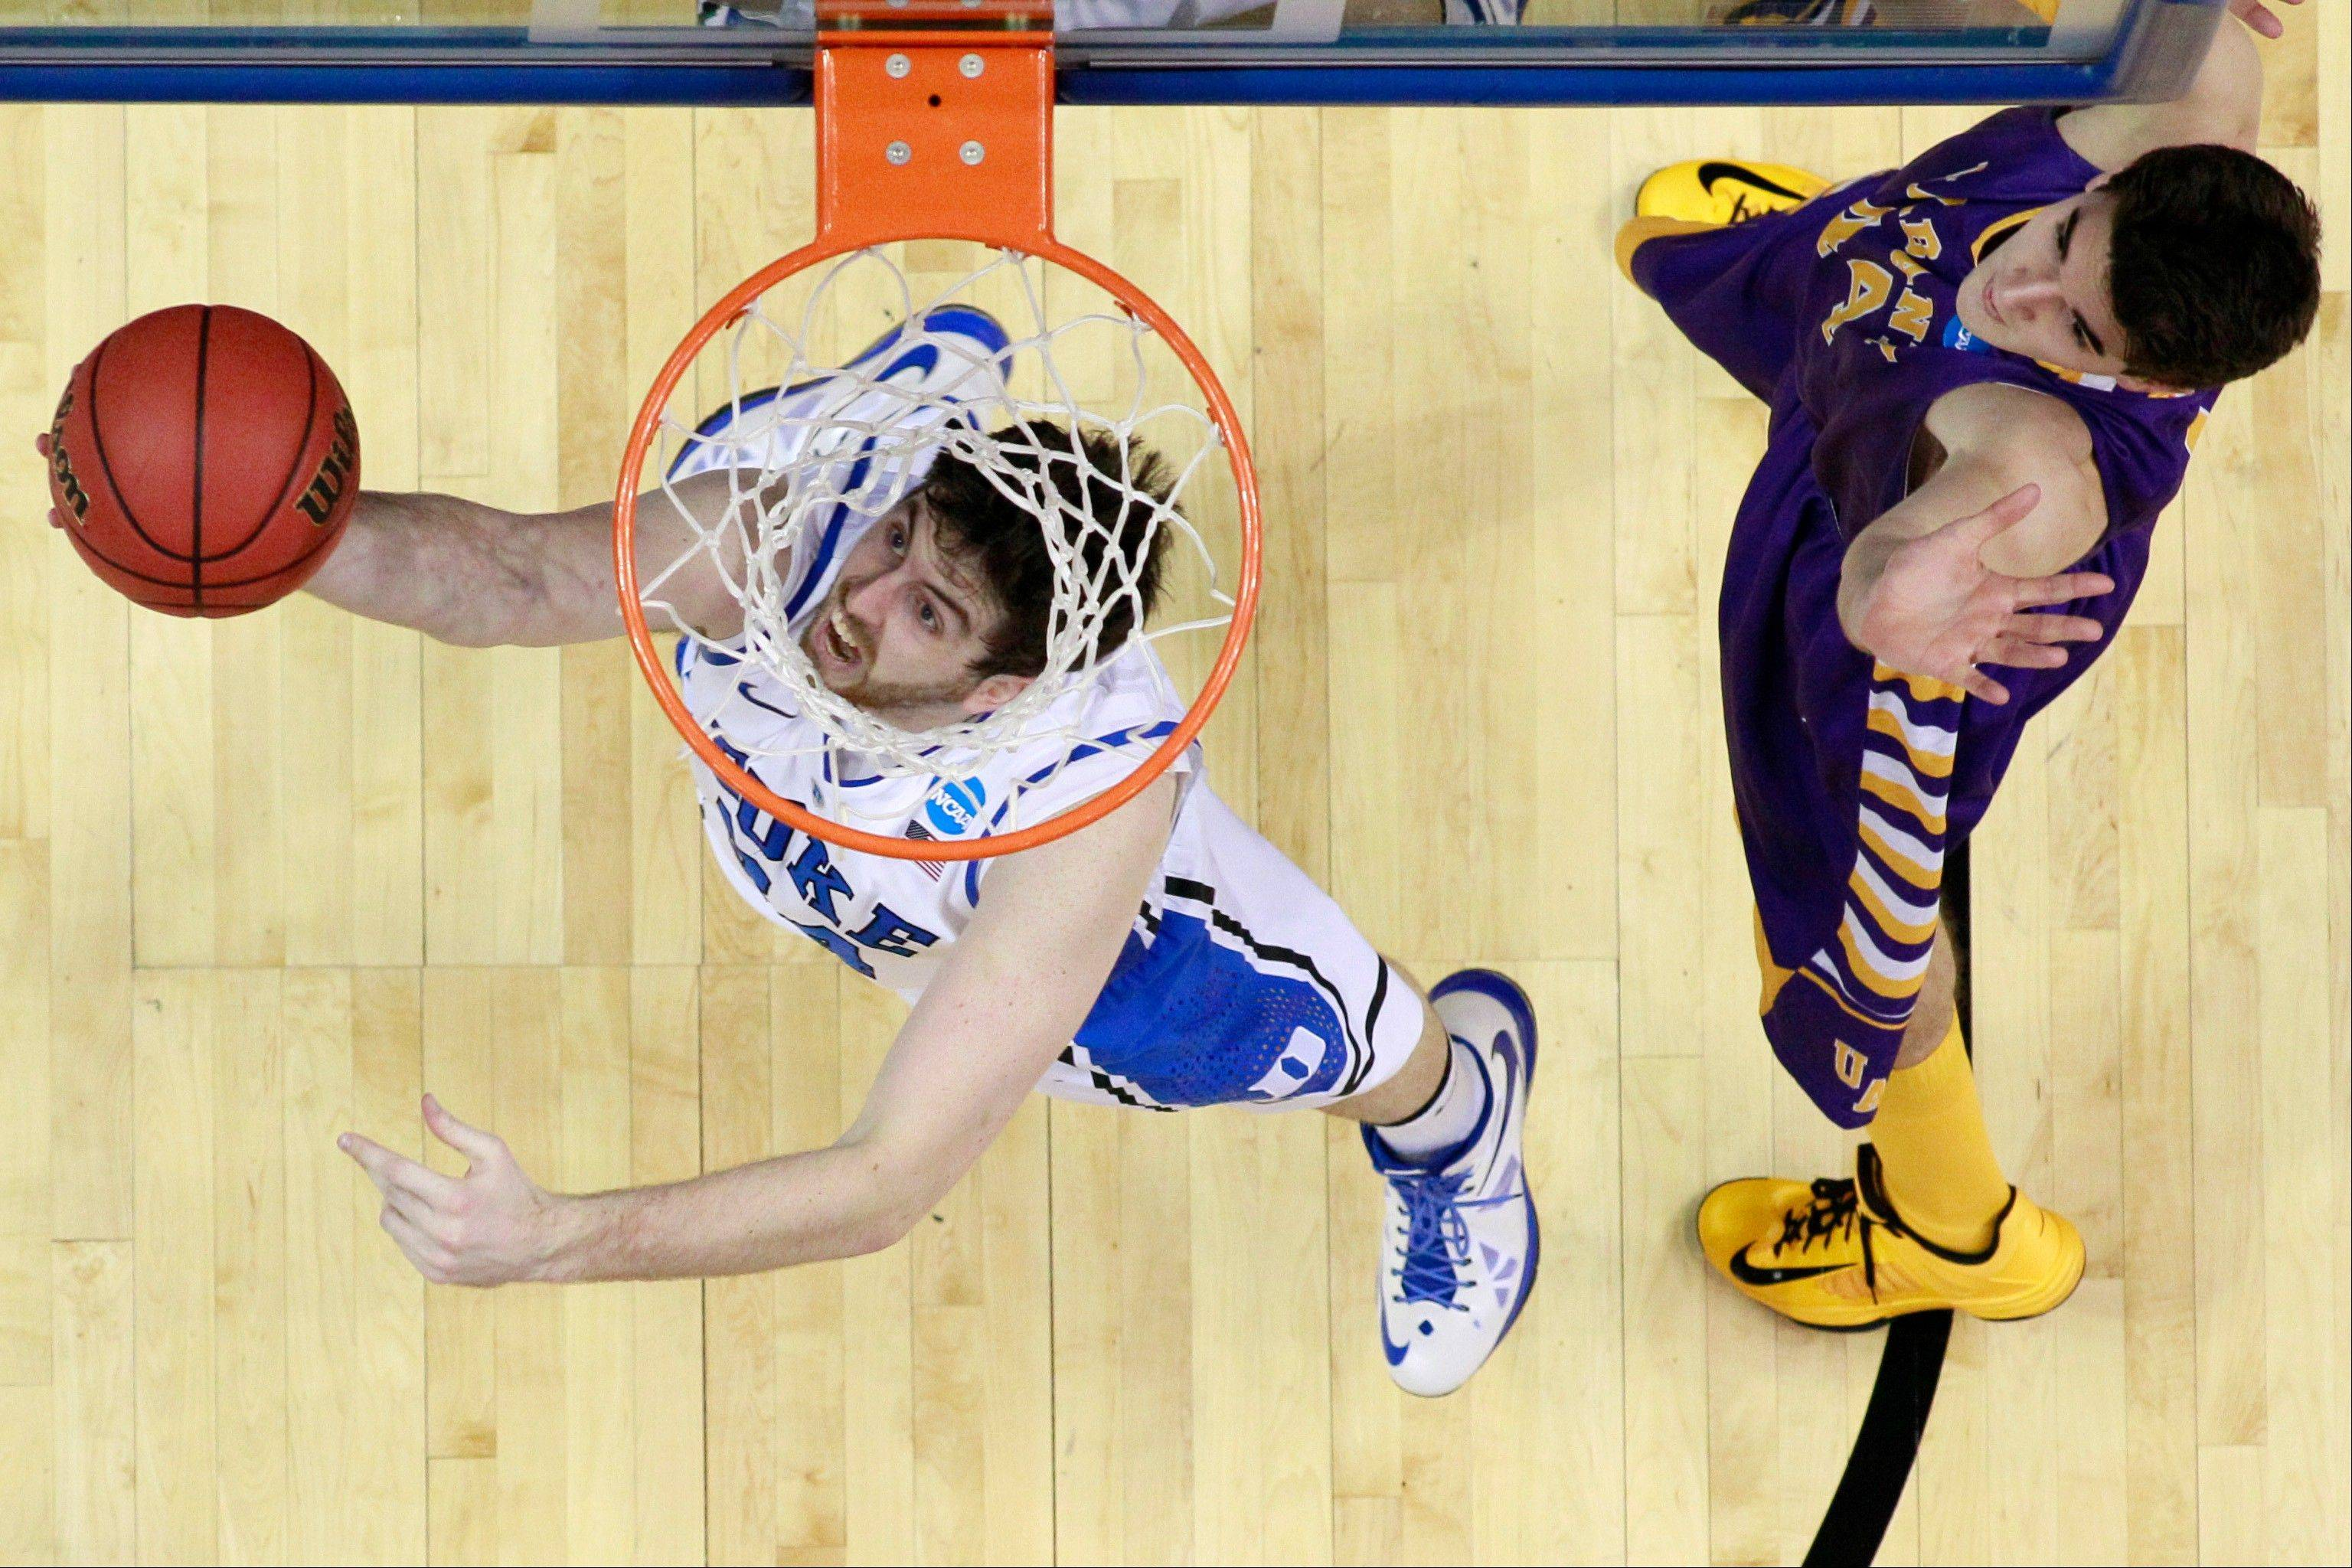 No. 2 seed Duke beats Albany 73-61